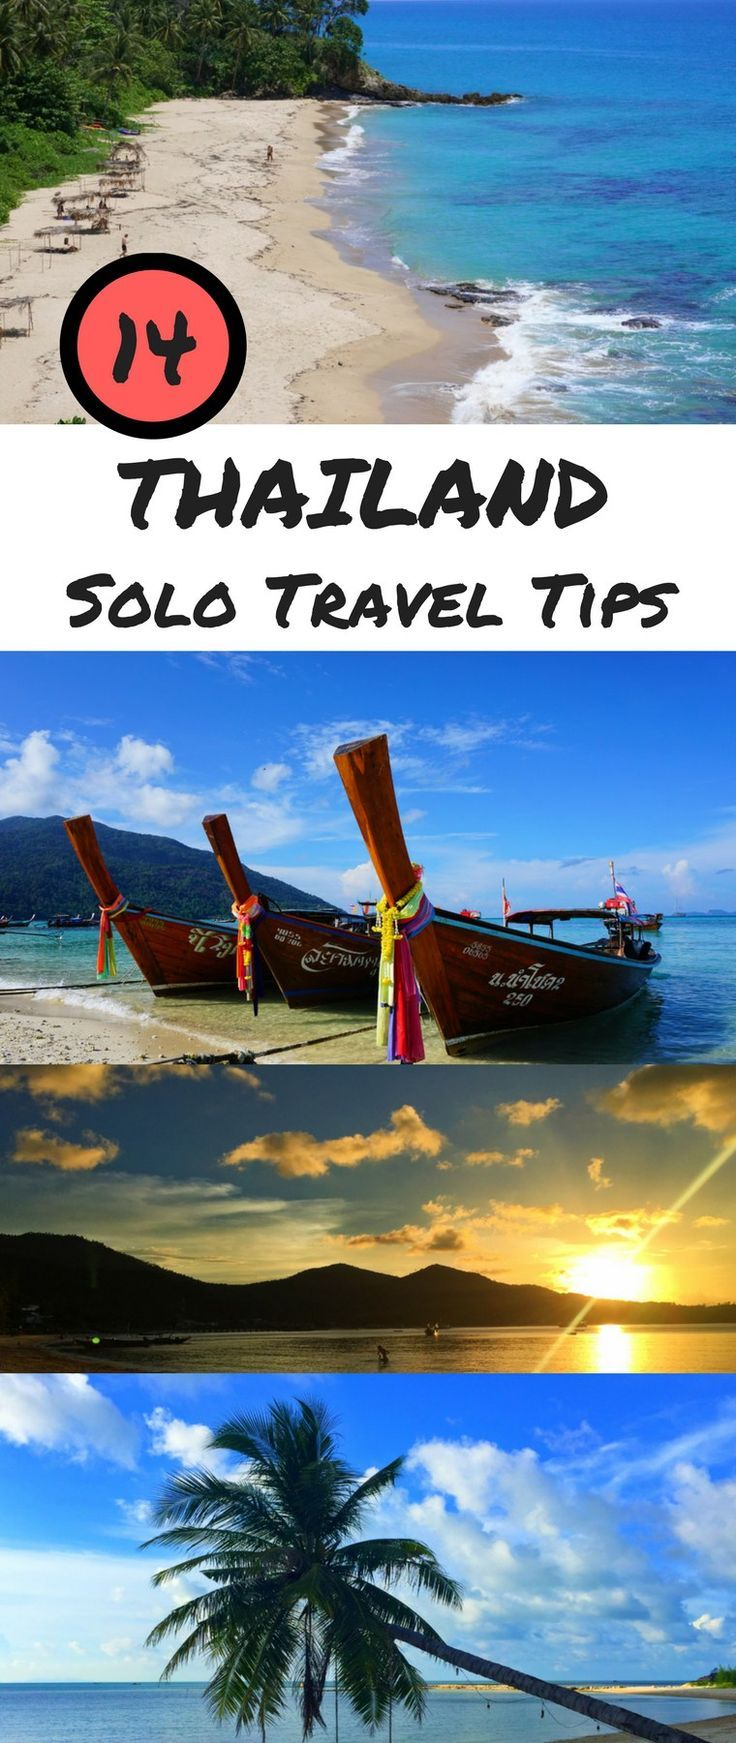 240 Best Solo Travel Tips Images On Pinterest  Tips -9573